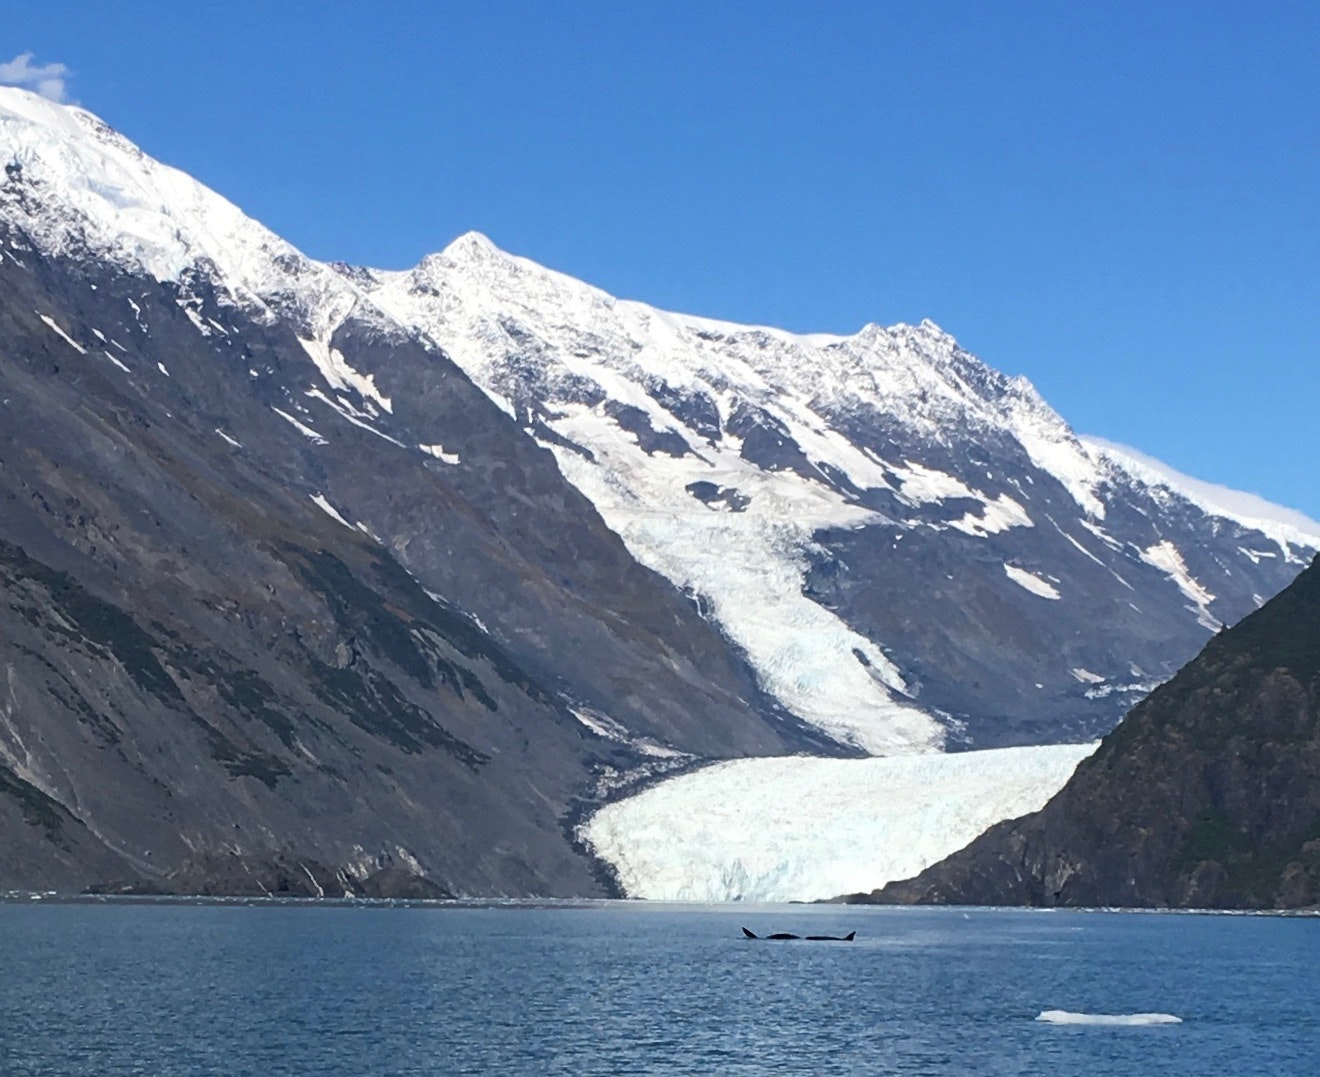 Orcas in front of Barry Glacier